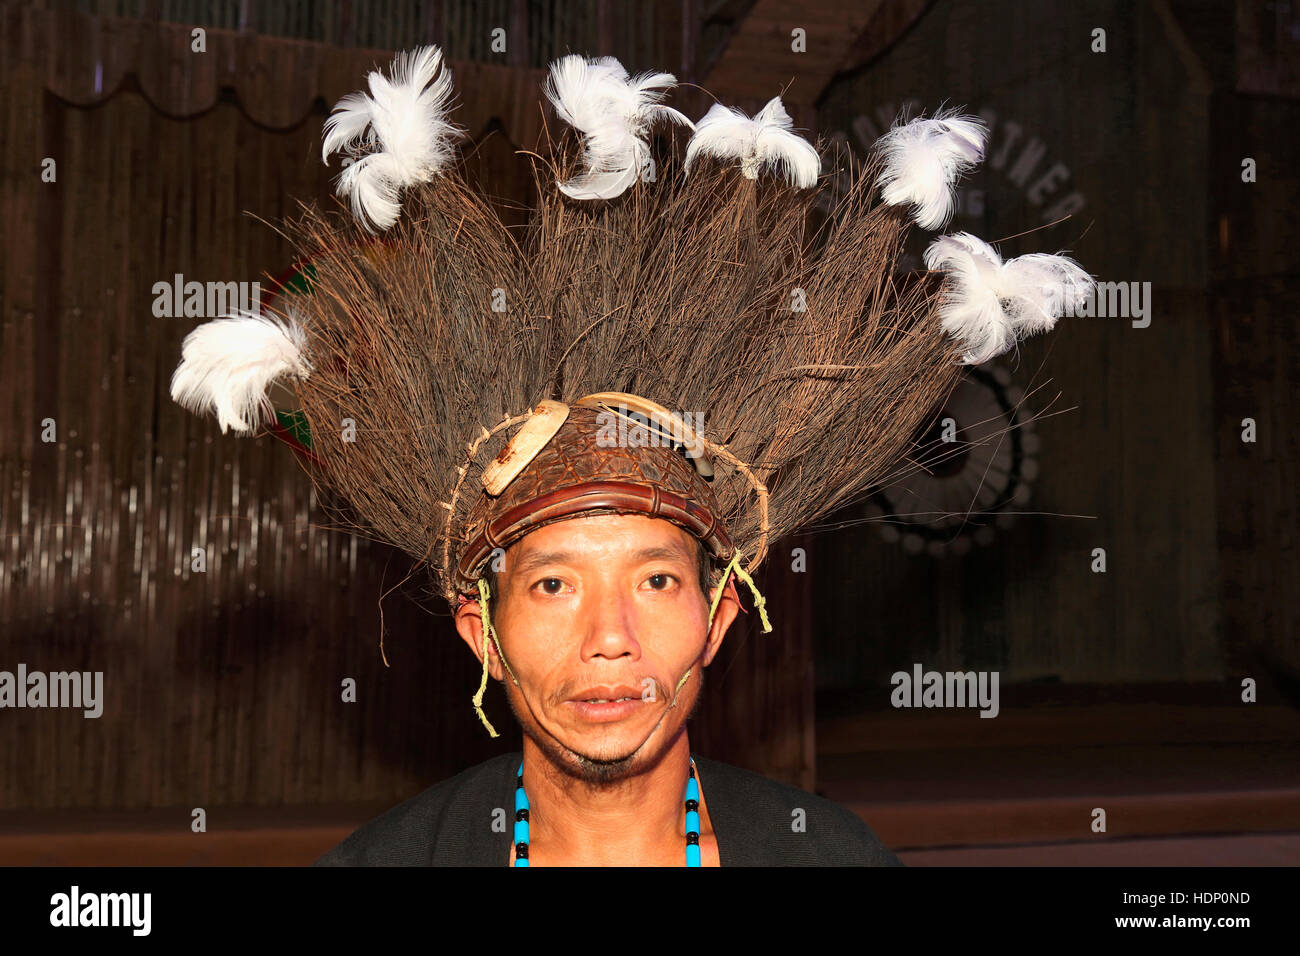 Adi Tribal Man with Traditional Headgear from Arunachal Pradesh India. Tribal Festival in Ajmer, Rajasthan, India - Stock Image